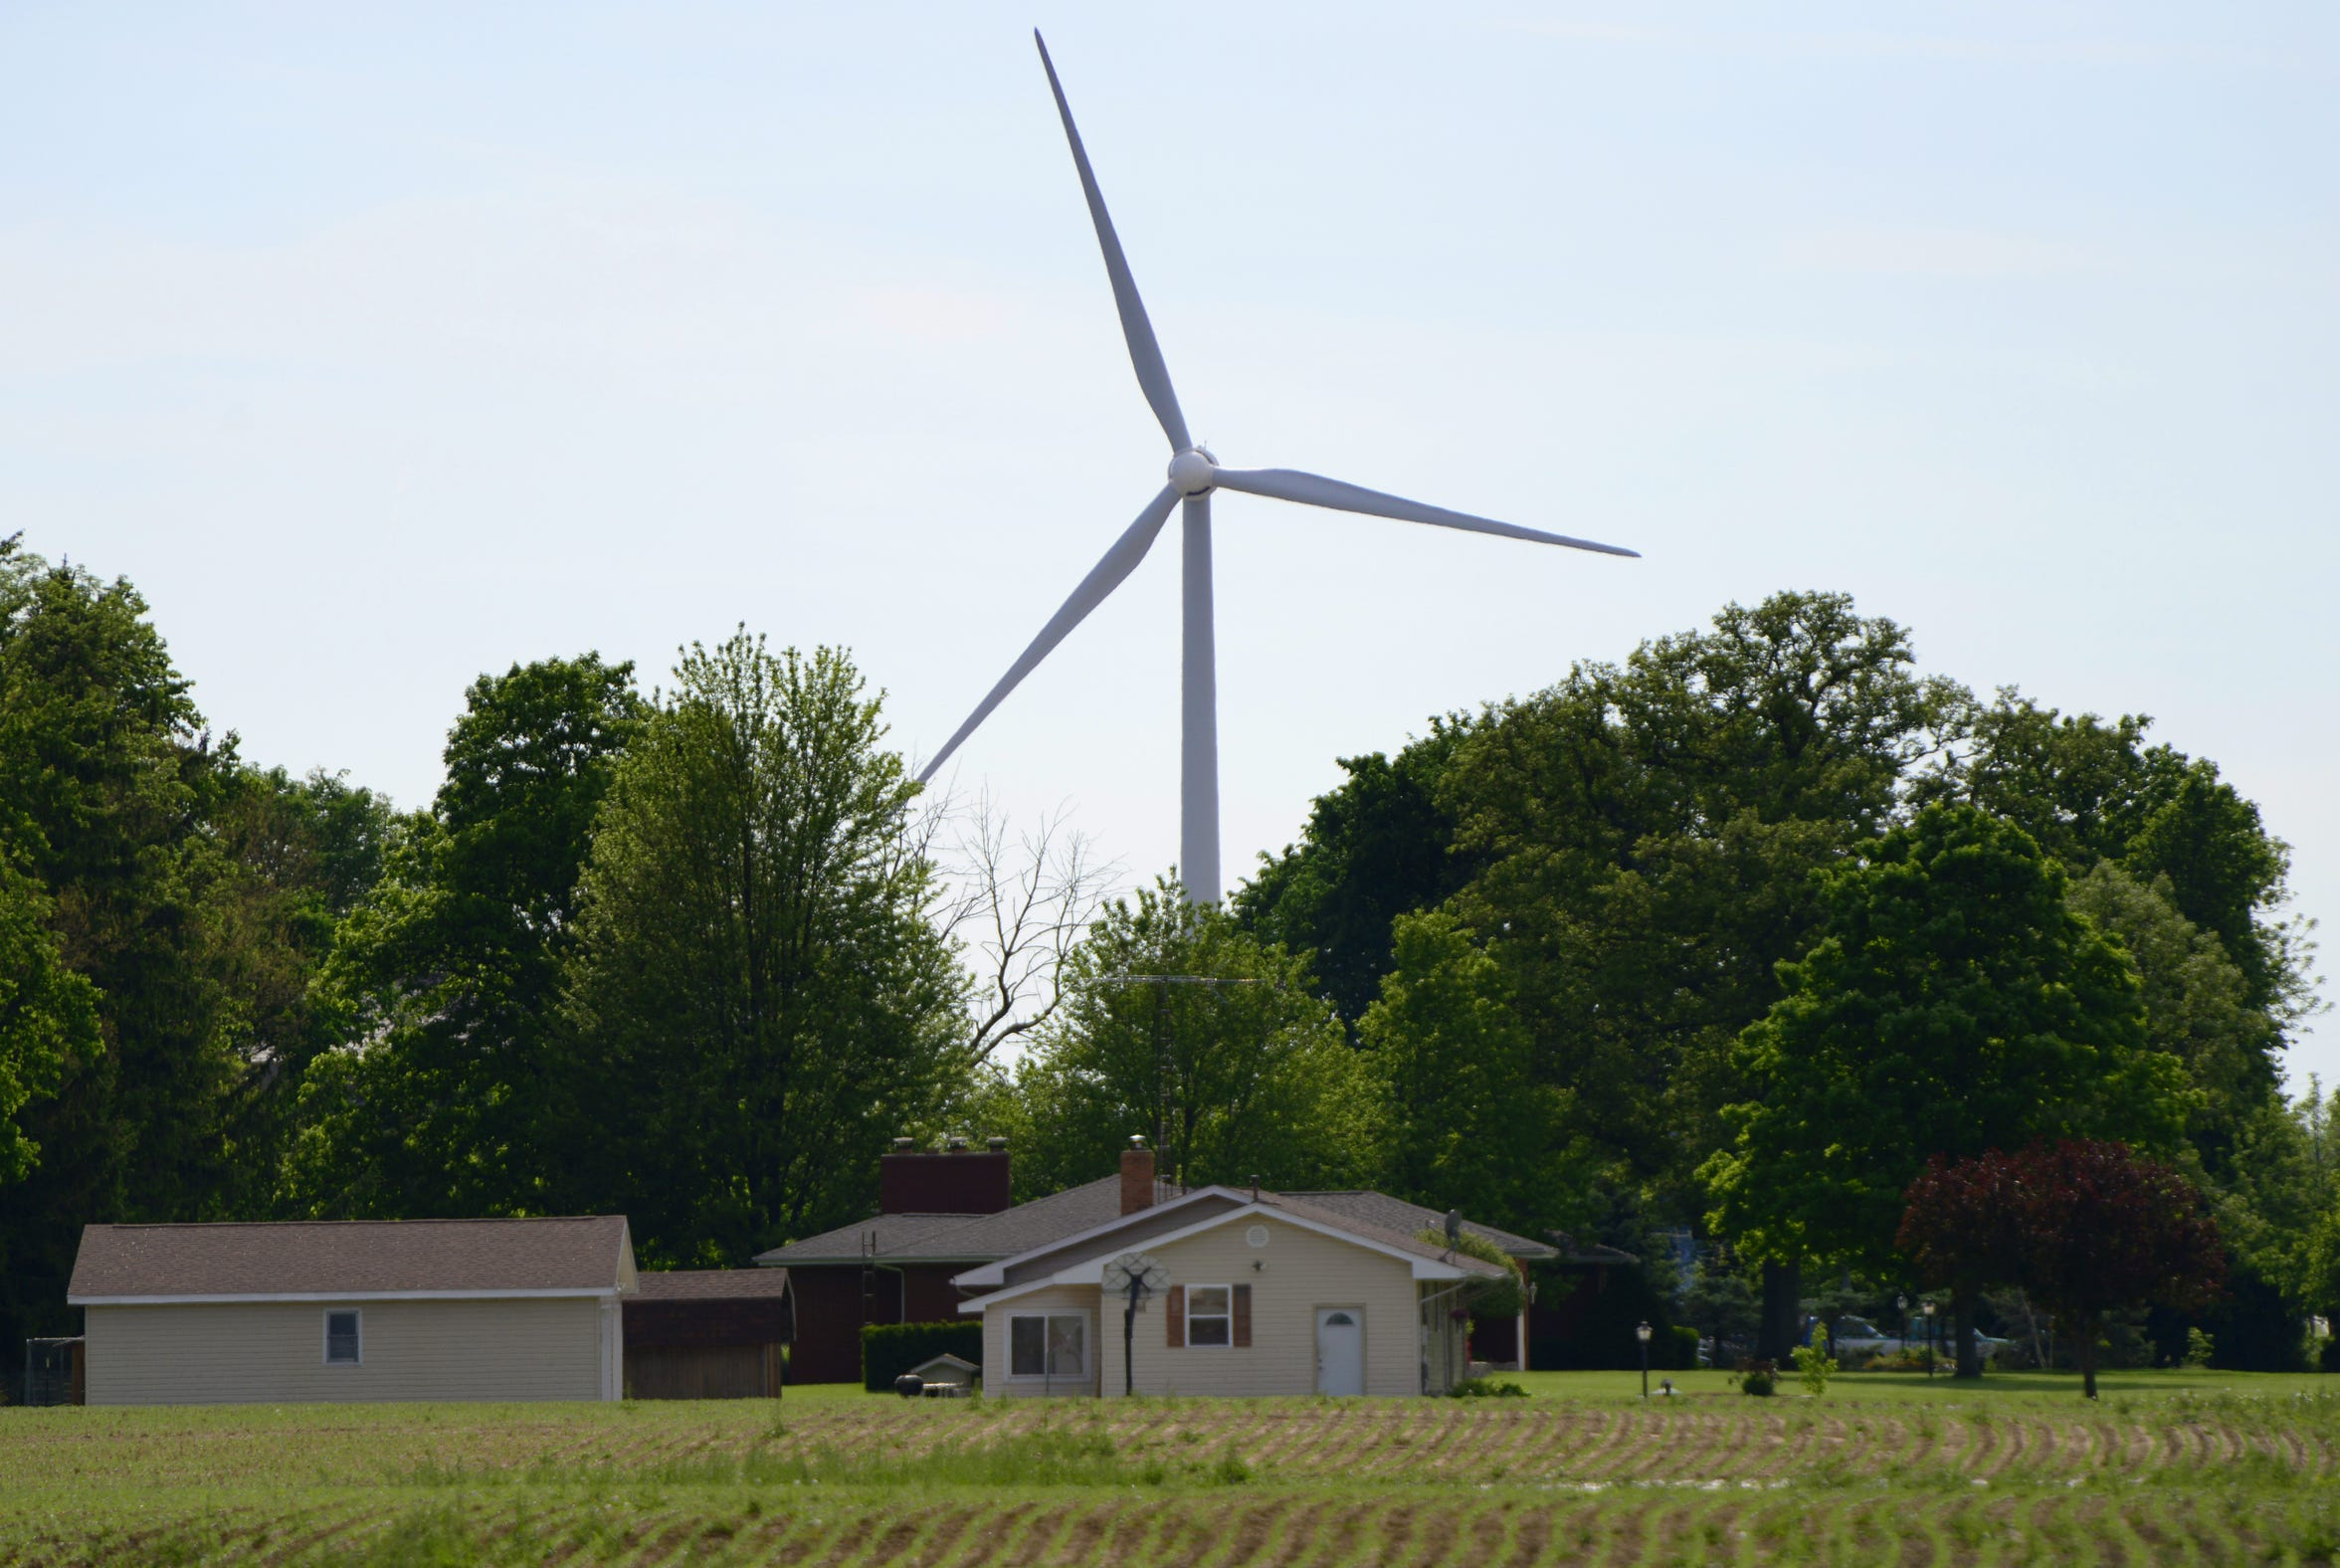 Wind turbines in Findlay. APEX Clean Energy is planning to build up to 47 wind turbines in Sandusky and Seneca counties.